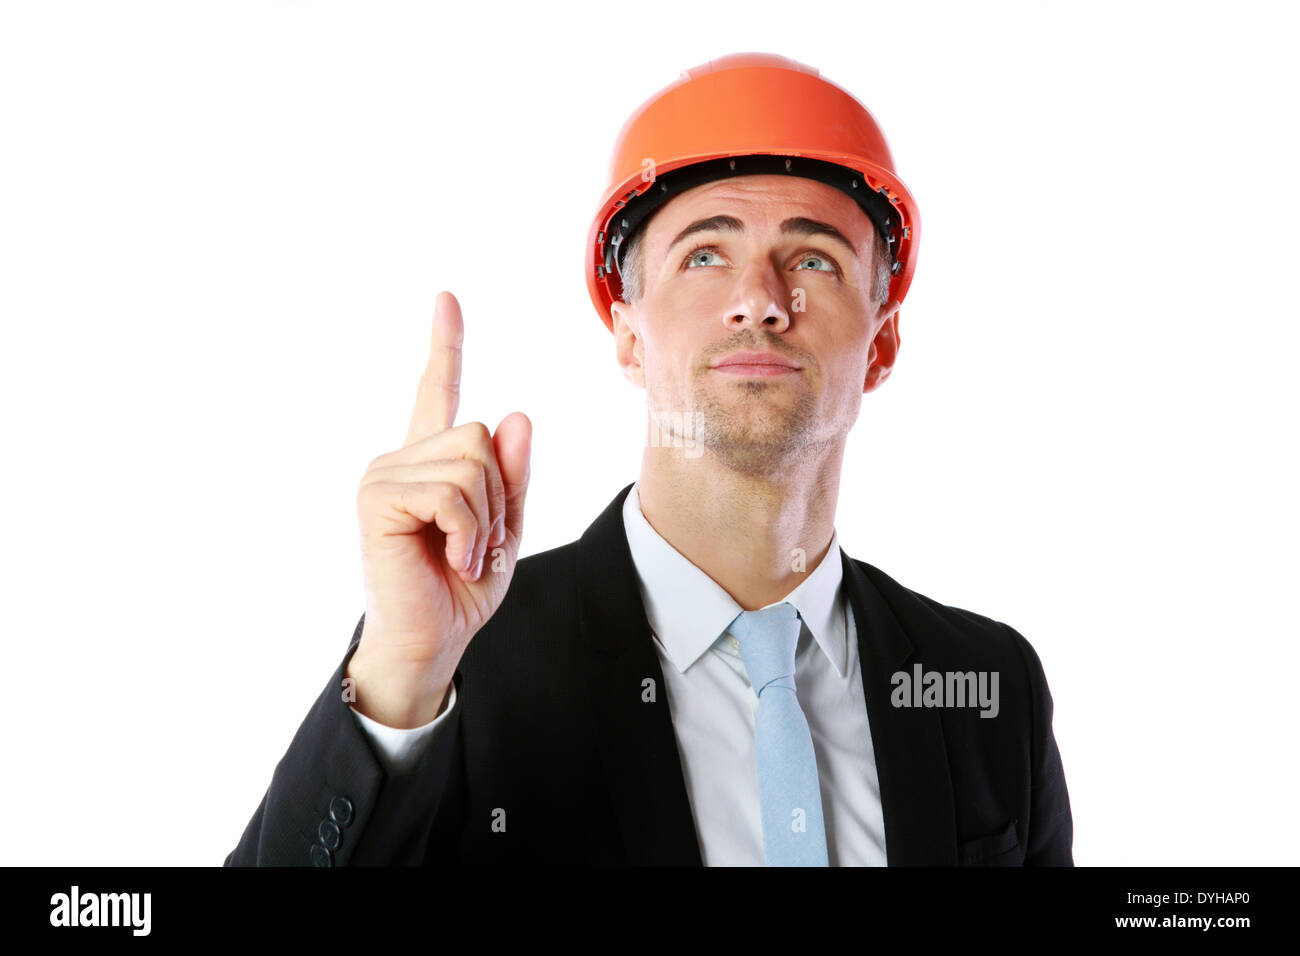 Portrait of a businessman in helmet pointing up at copyspace over white background - Stock Image